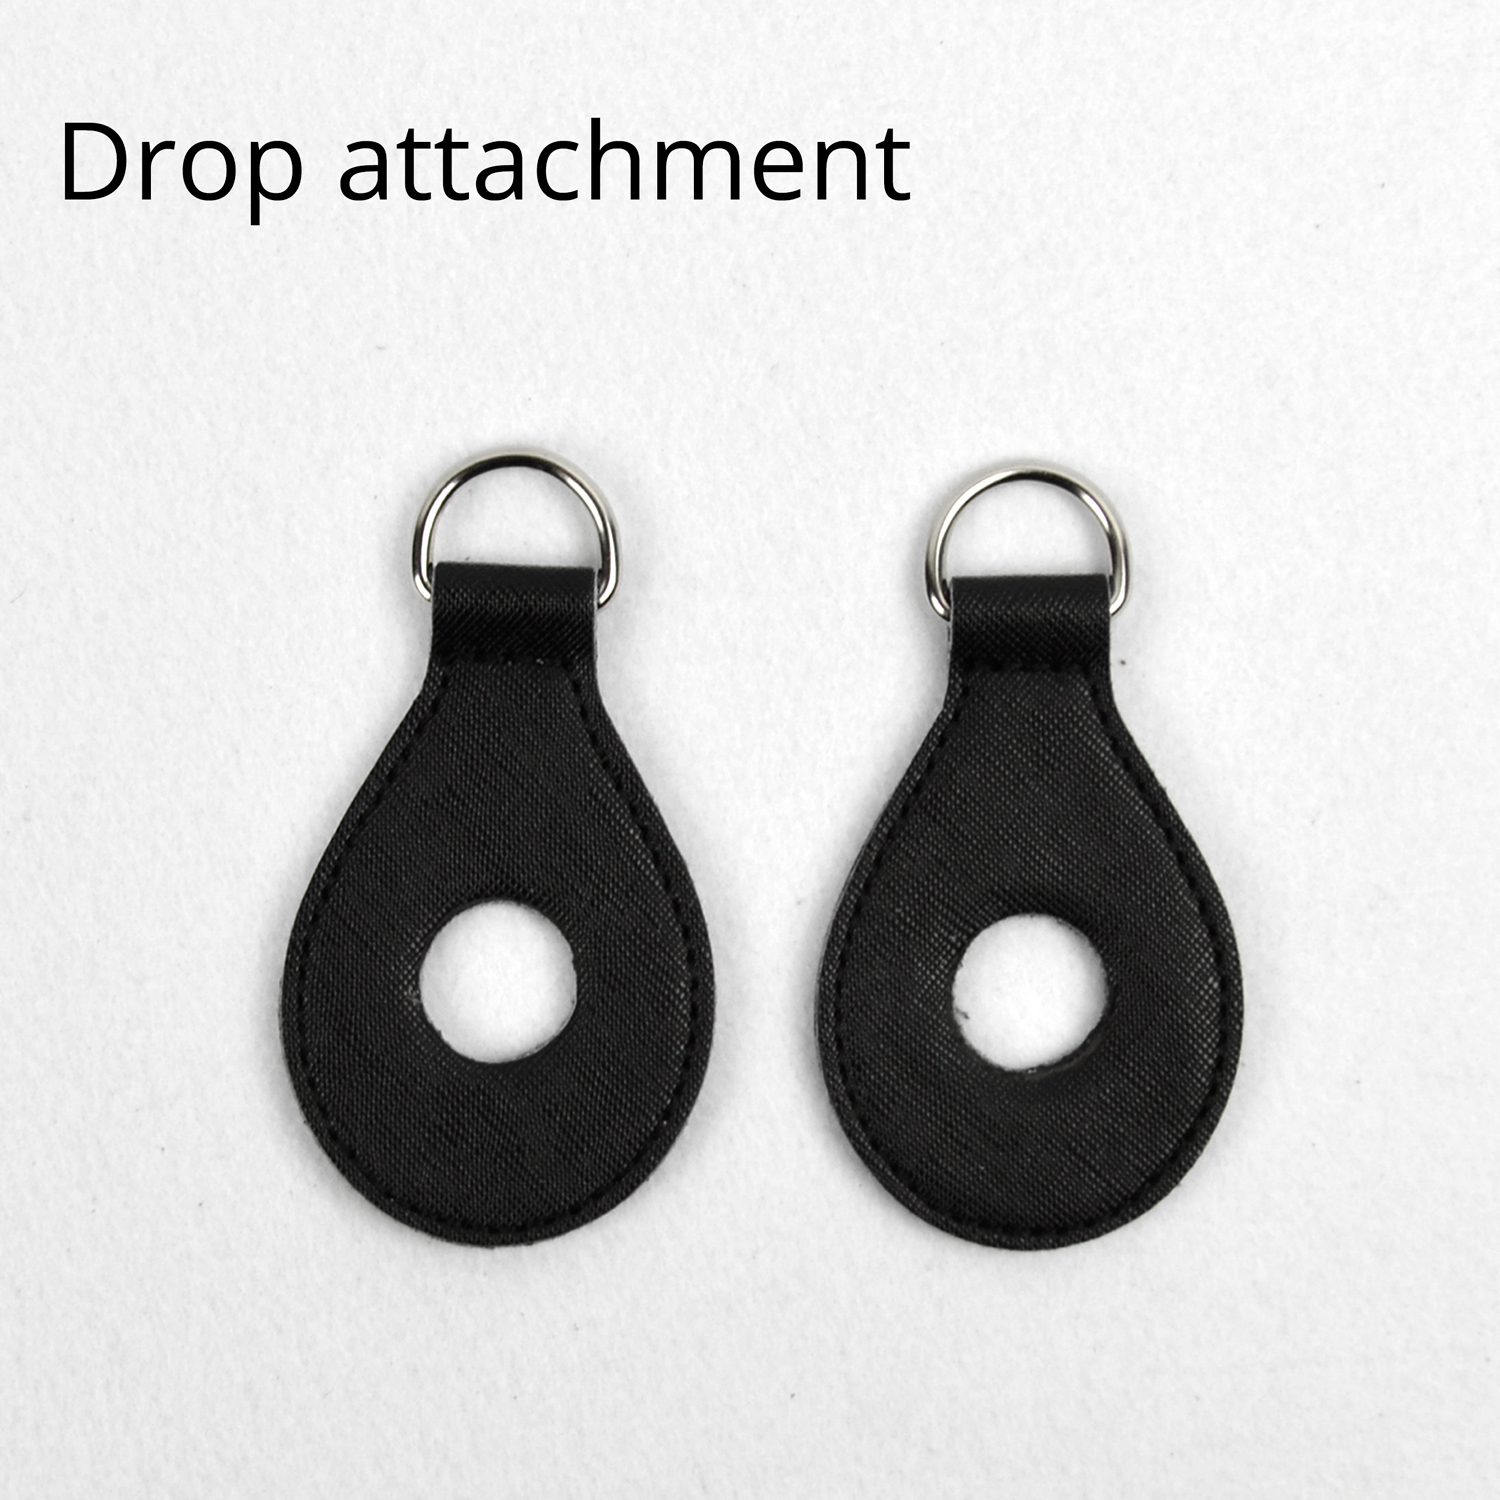 1 Pair 2 Pc PU Leather Drop Shaped Attachment Accessory Fitting With Holes For Obag Shoulder Strap For O Bag Handbag Women Bag